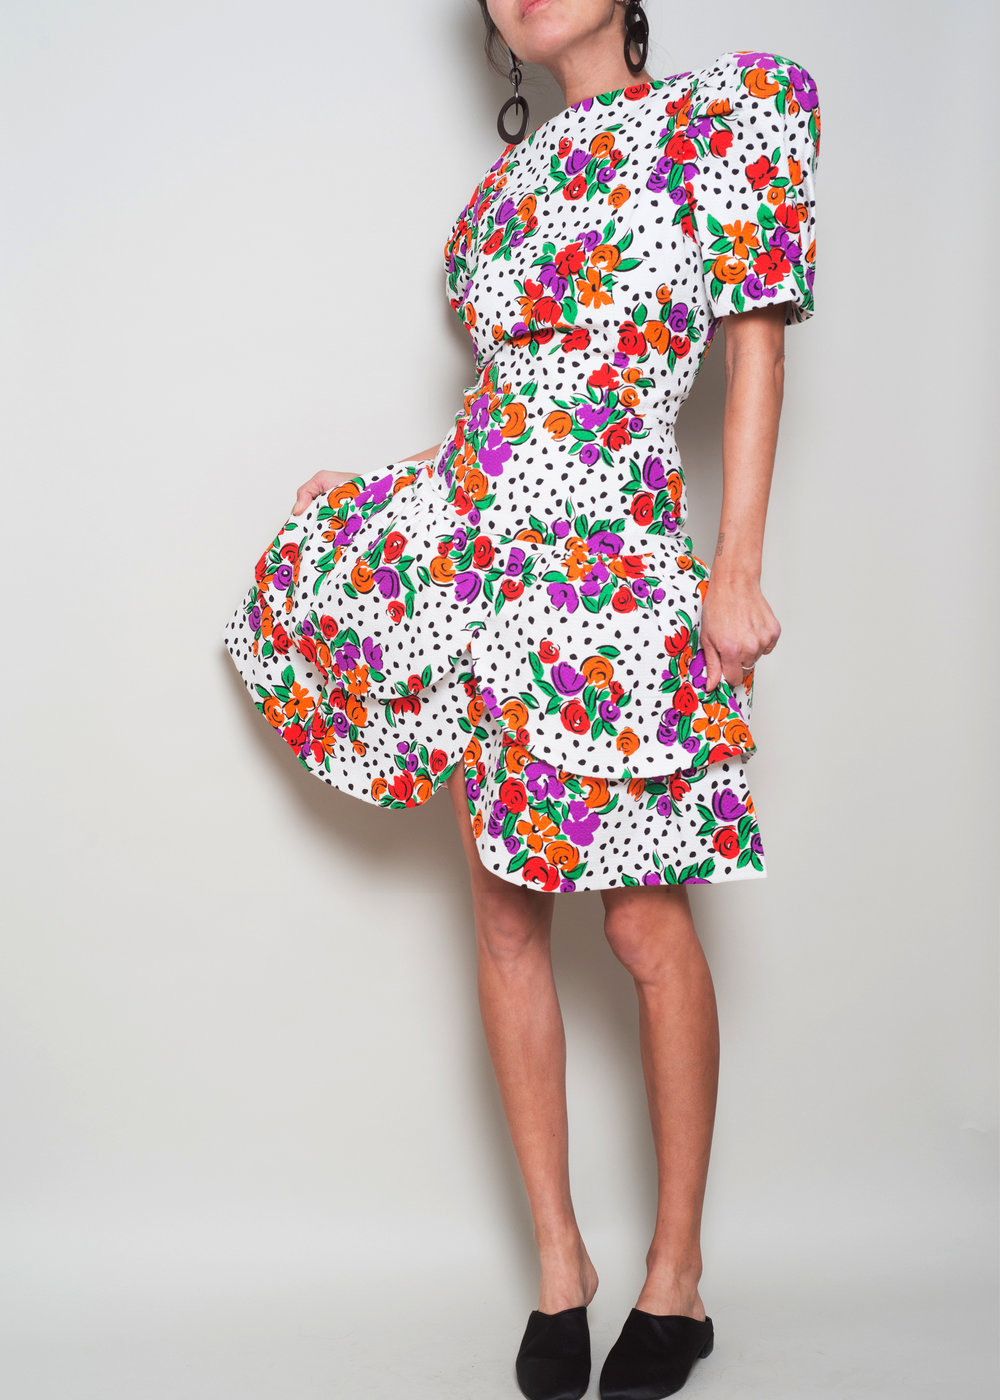 1980s SCAASI Floralpuff sleeve Party Dress - FROM COAST to COAST Vintage